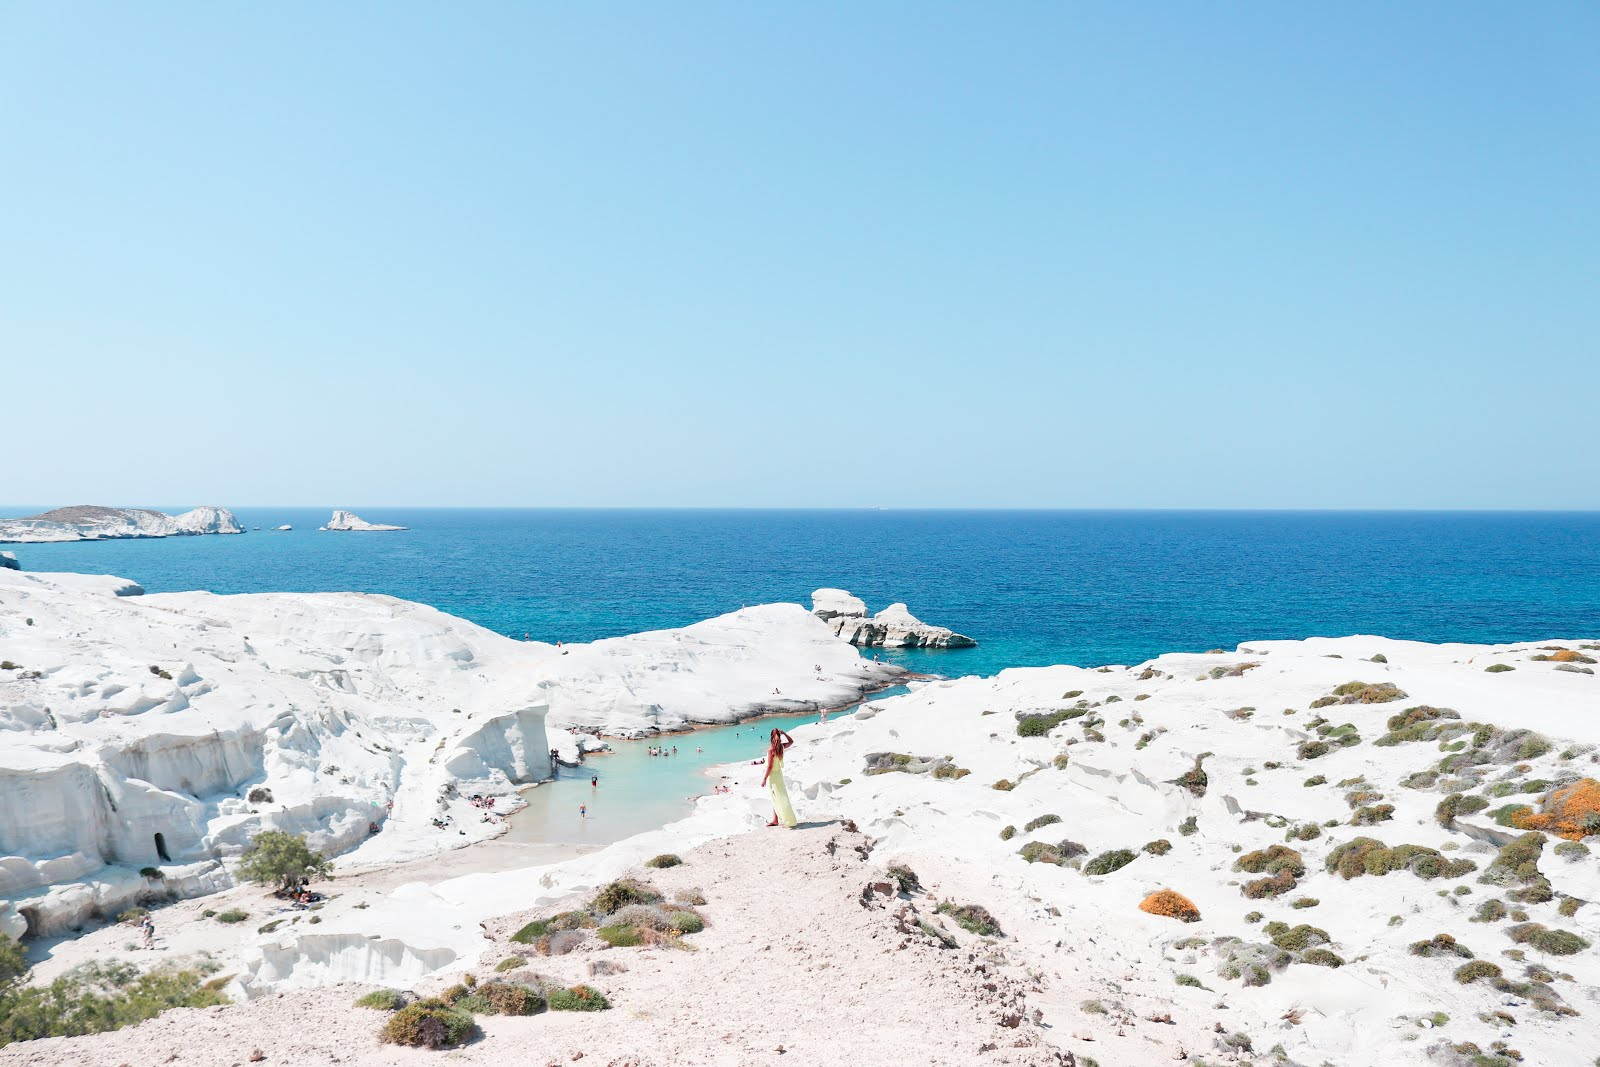 Sarakiniko Beach in Milos island, Greece